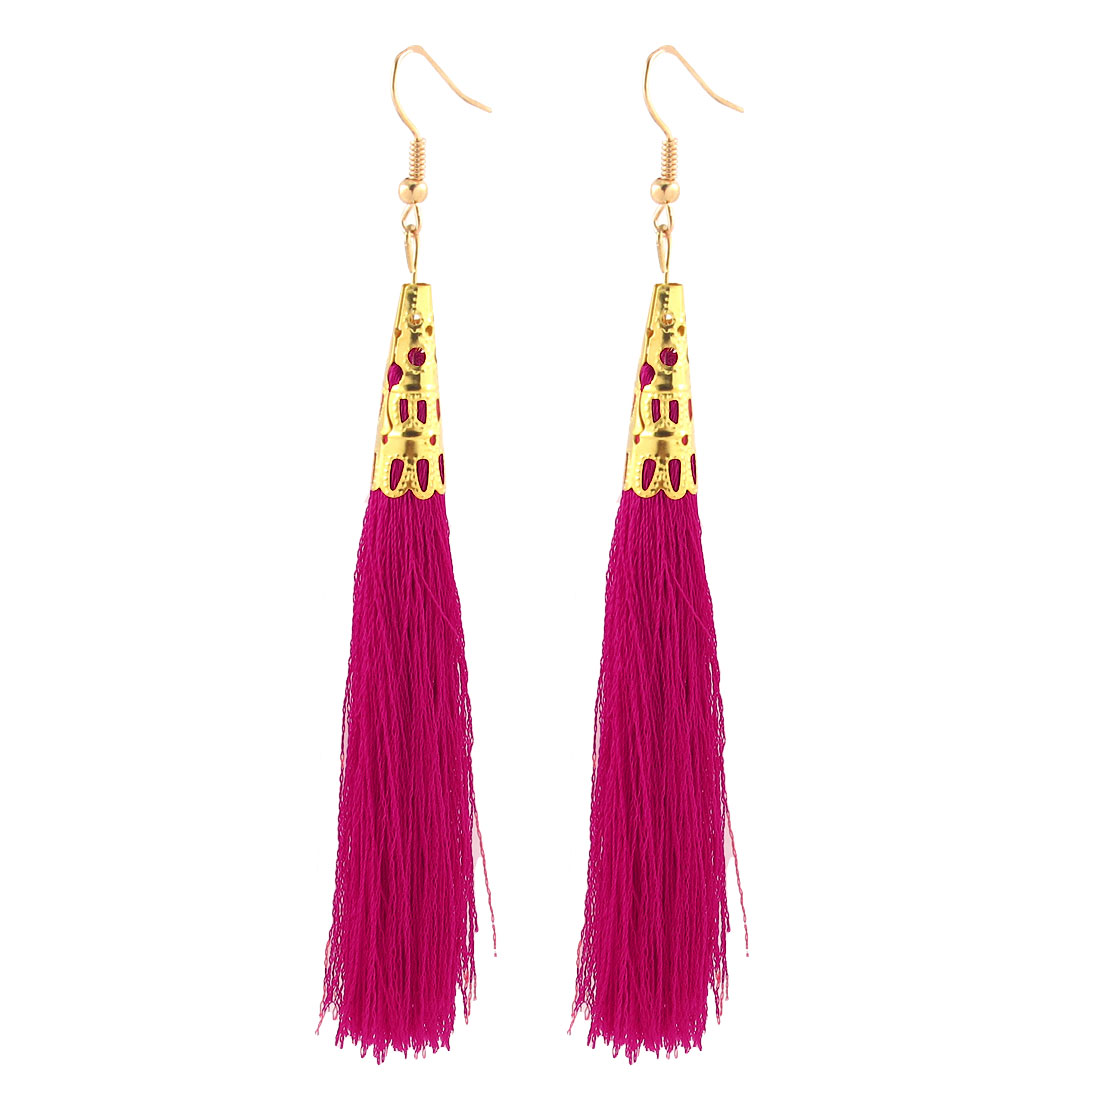 Lady Long Tassel Dangle Metal Hook Earrings Charm Hanging Decoration Pair Fushcia